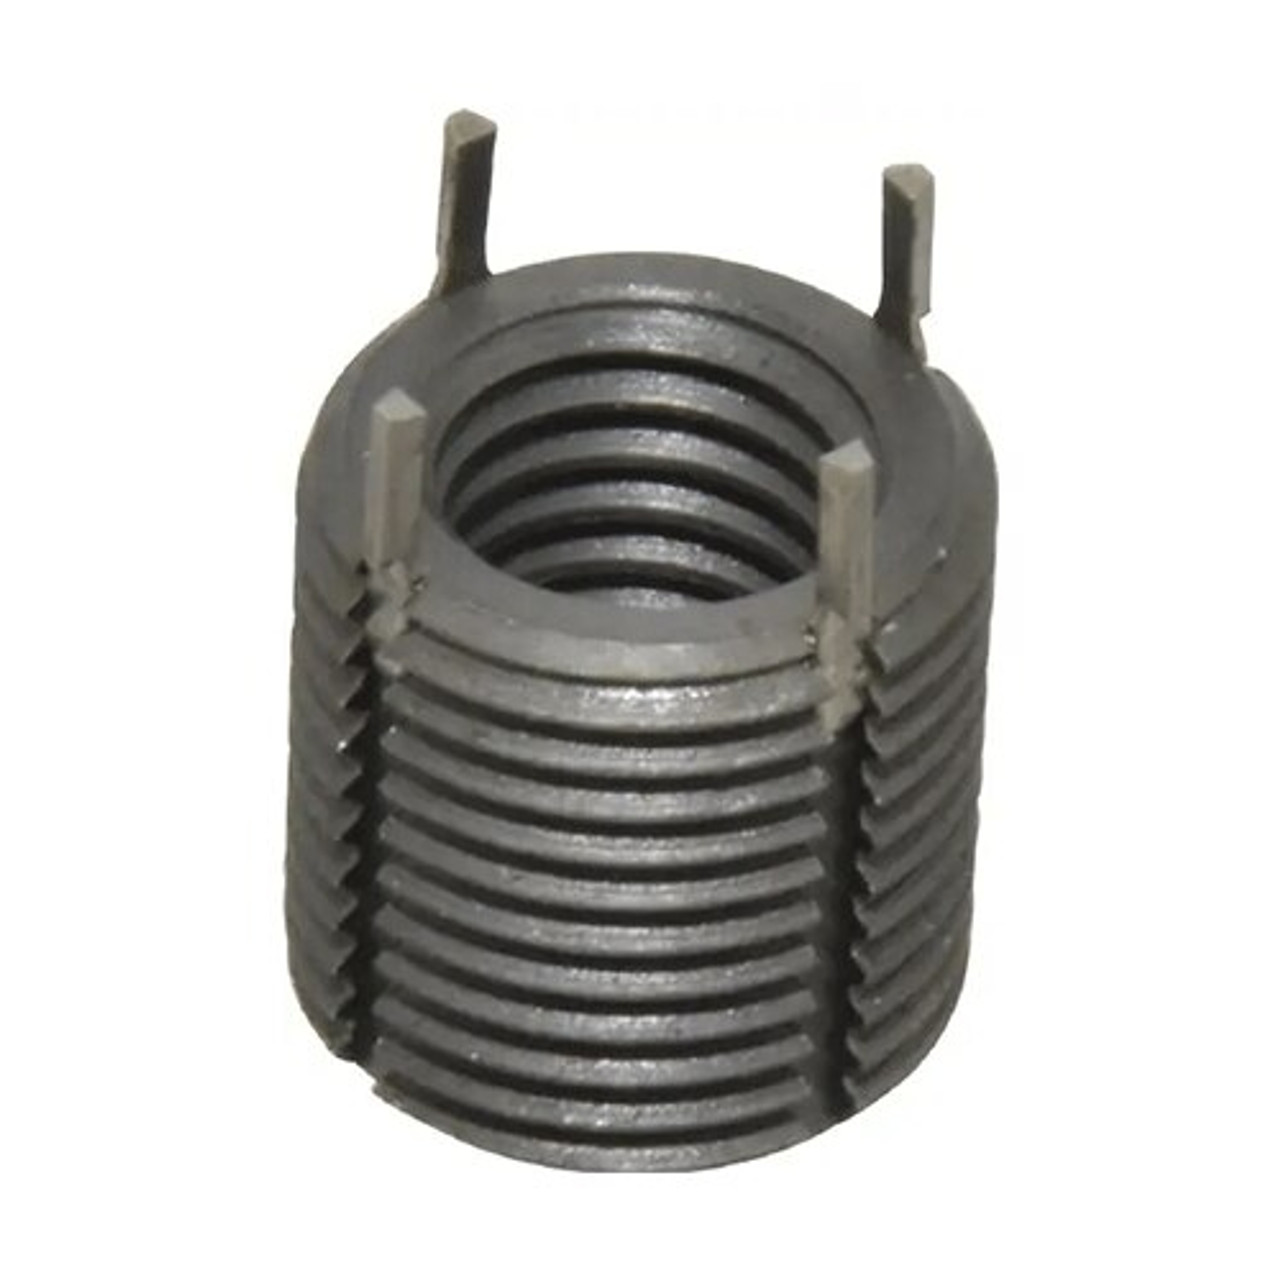 Jergens 1/2 In-13 TPI Thread Size 0.6200 In Length Carbon Steel Keylocking Threaded Insert EDP: 25926